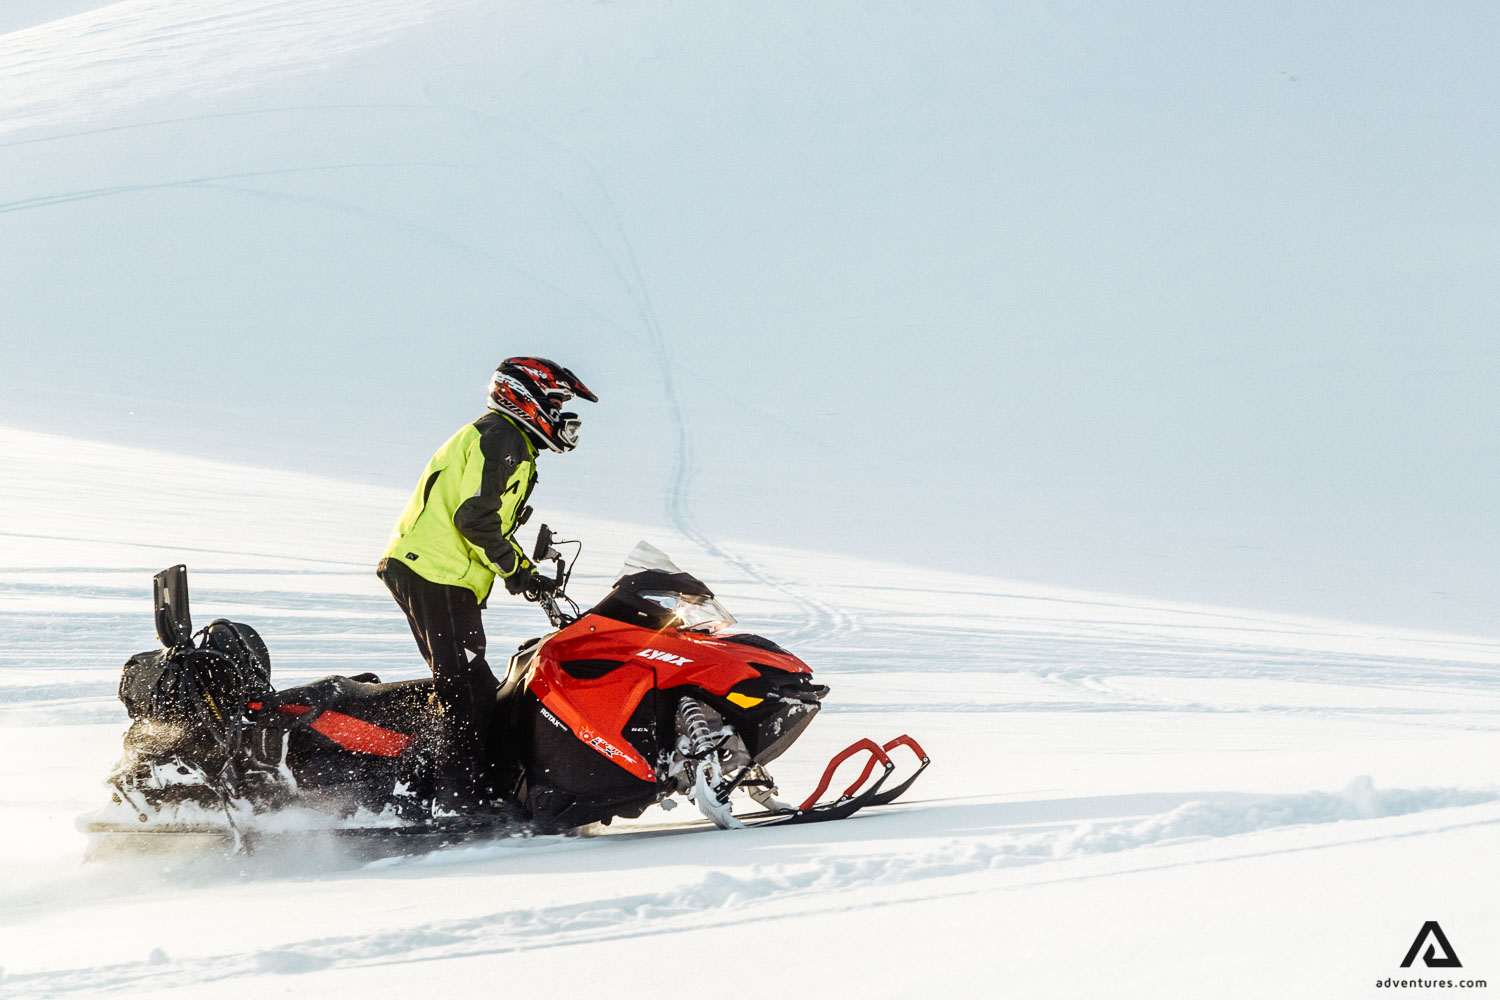 Riding position on a snowmobile